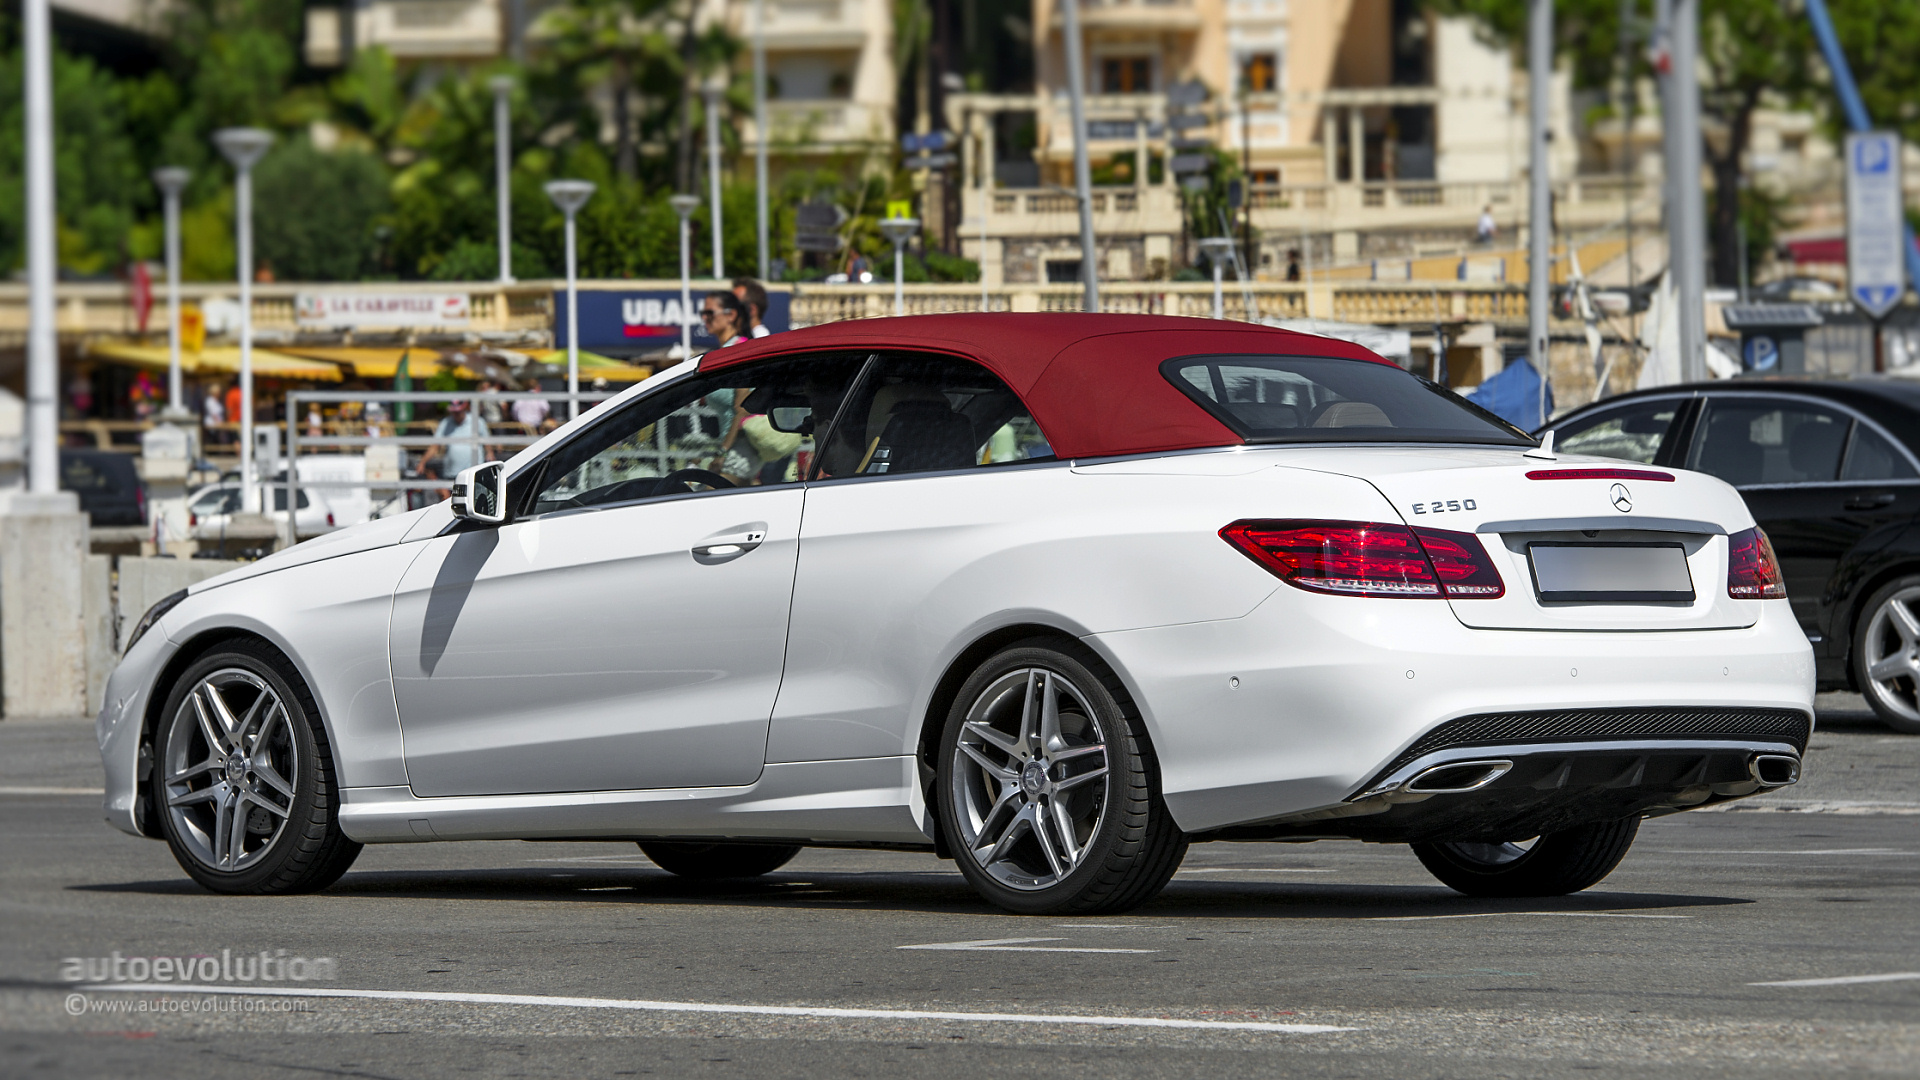 2014 MERCEDES-BENZ E-Class Cabriolet Review - autoevolution